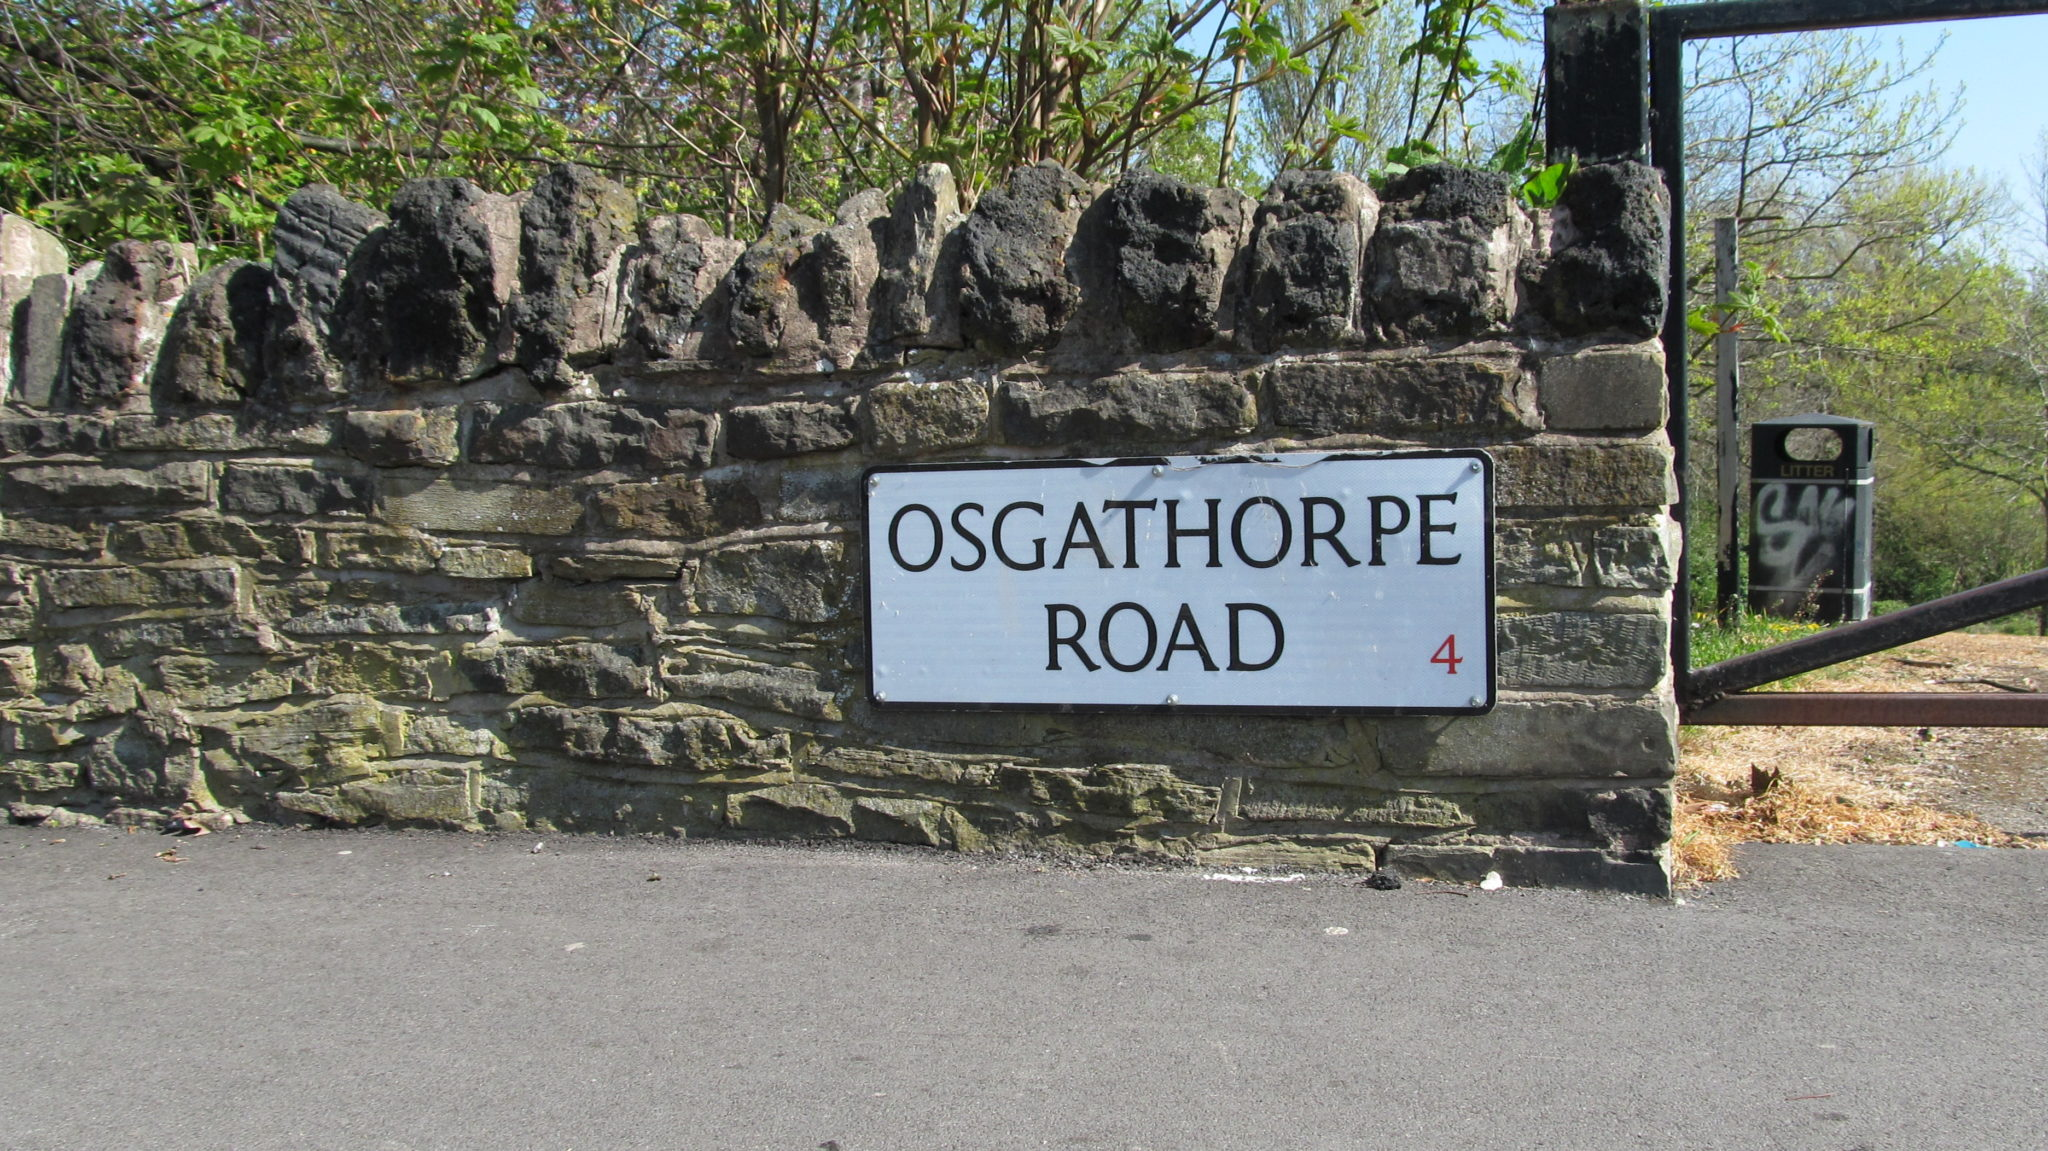 Osgathorpe Road